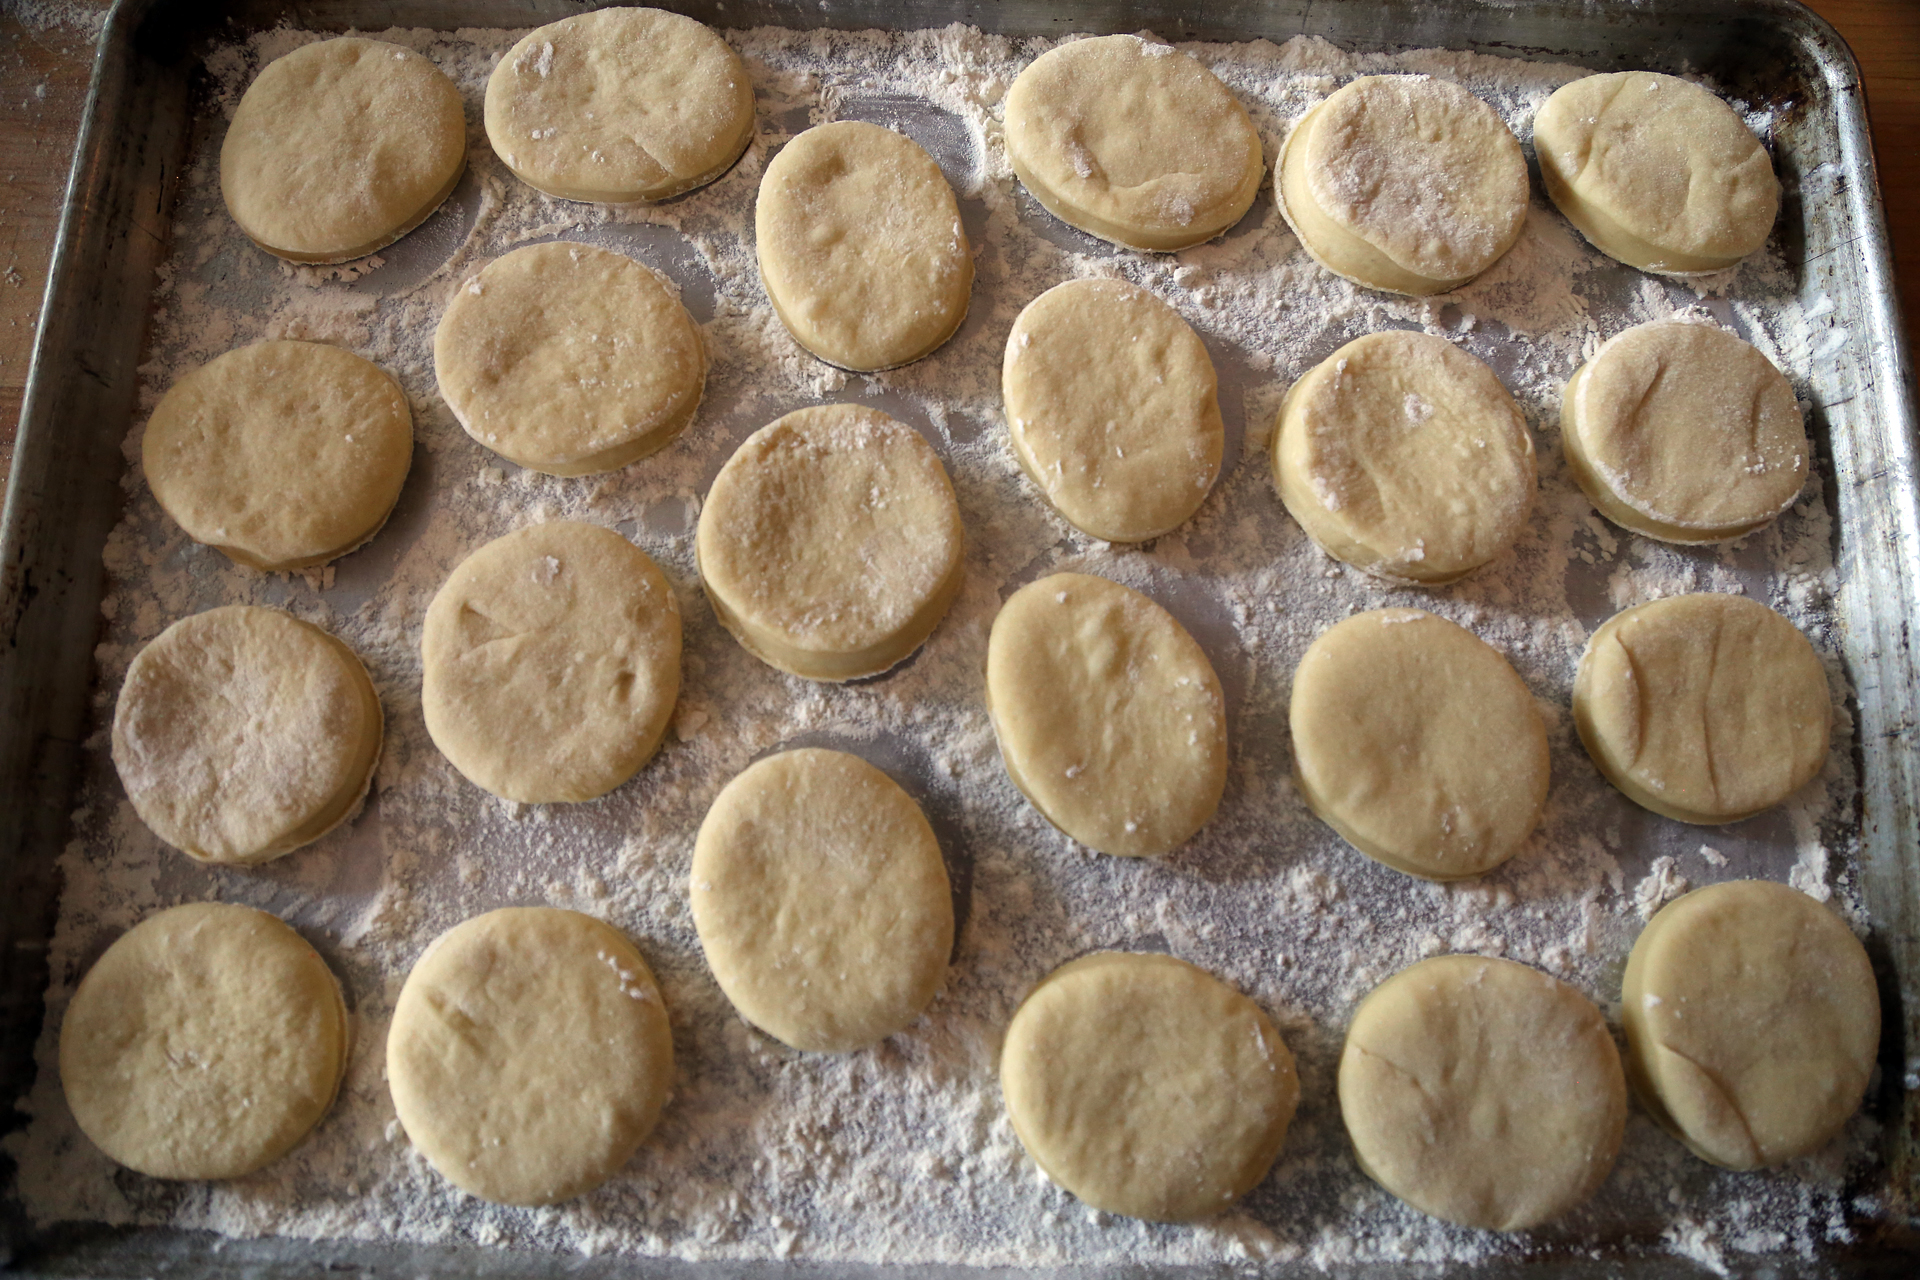 Place the dough rounds at least 1 inch apart on the baking sheet.